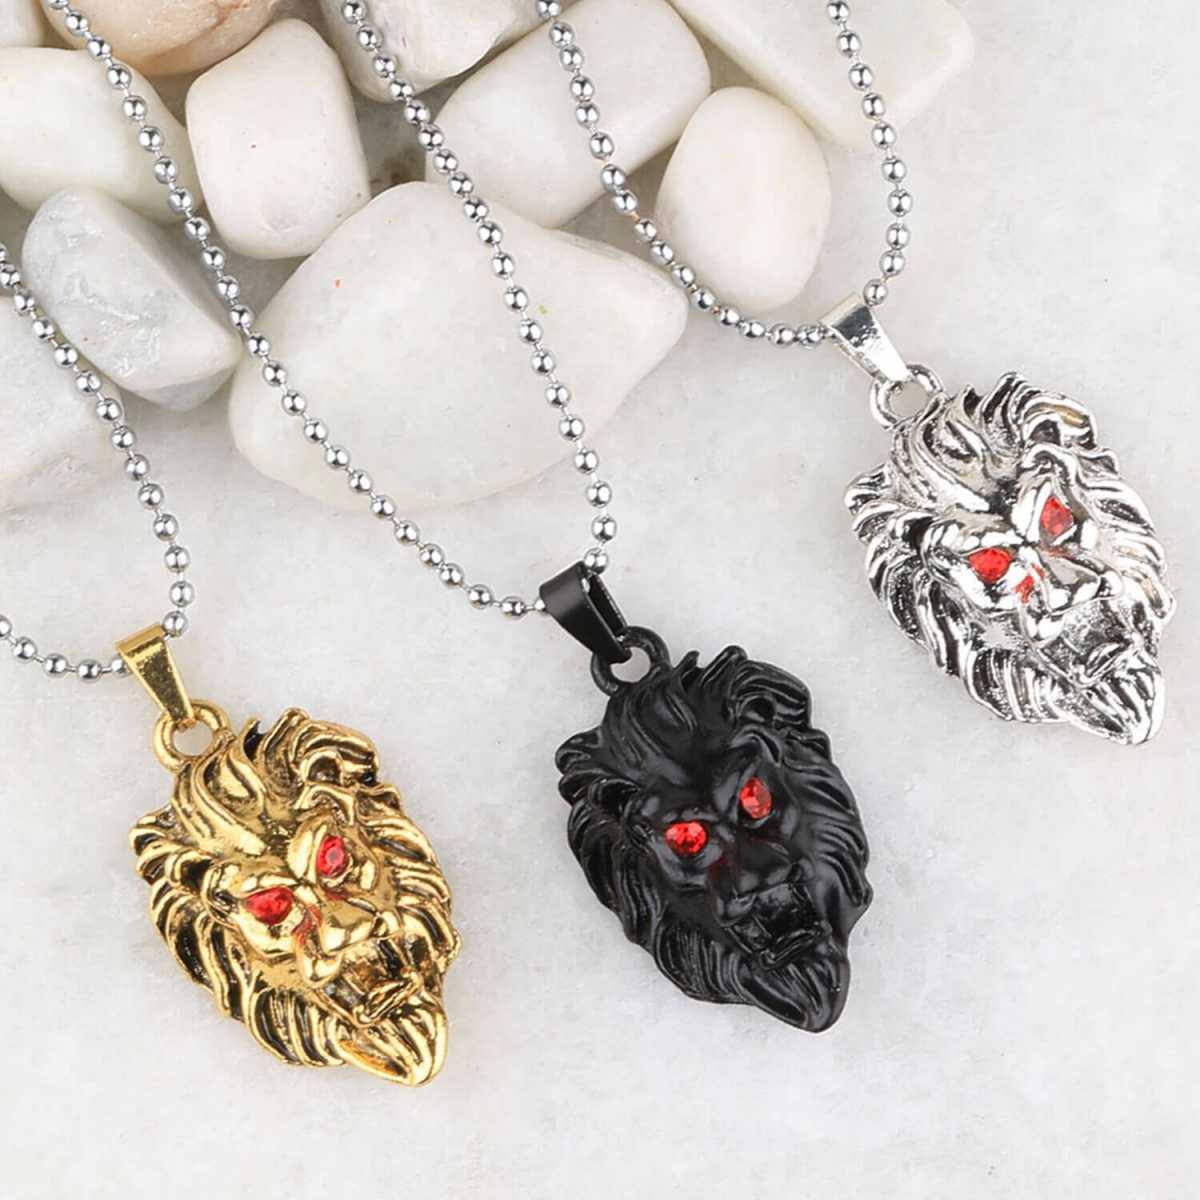 SILVERSHINE Silver Plated Stylist Chain With Lion Design Combo Chain pendant For Man Boys-3Piece